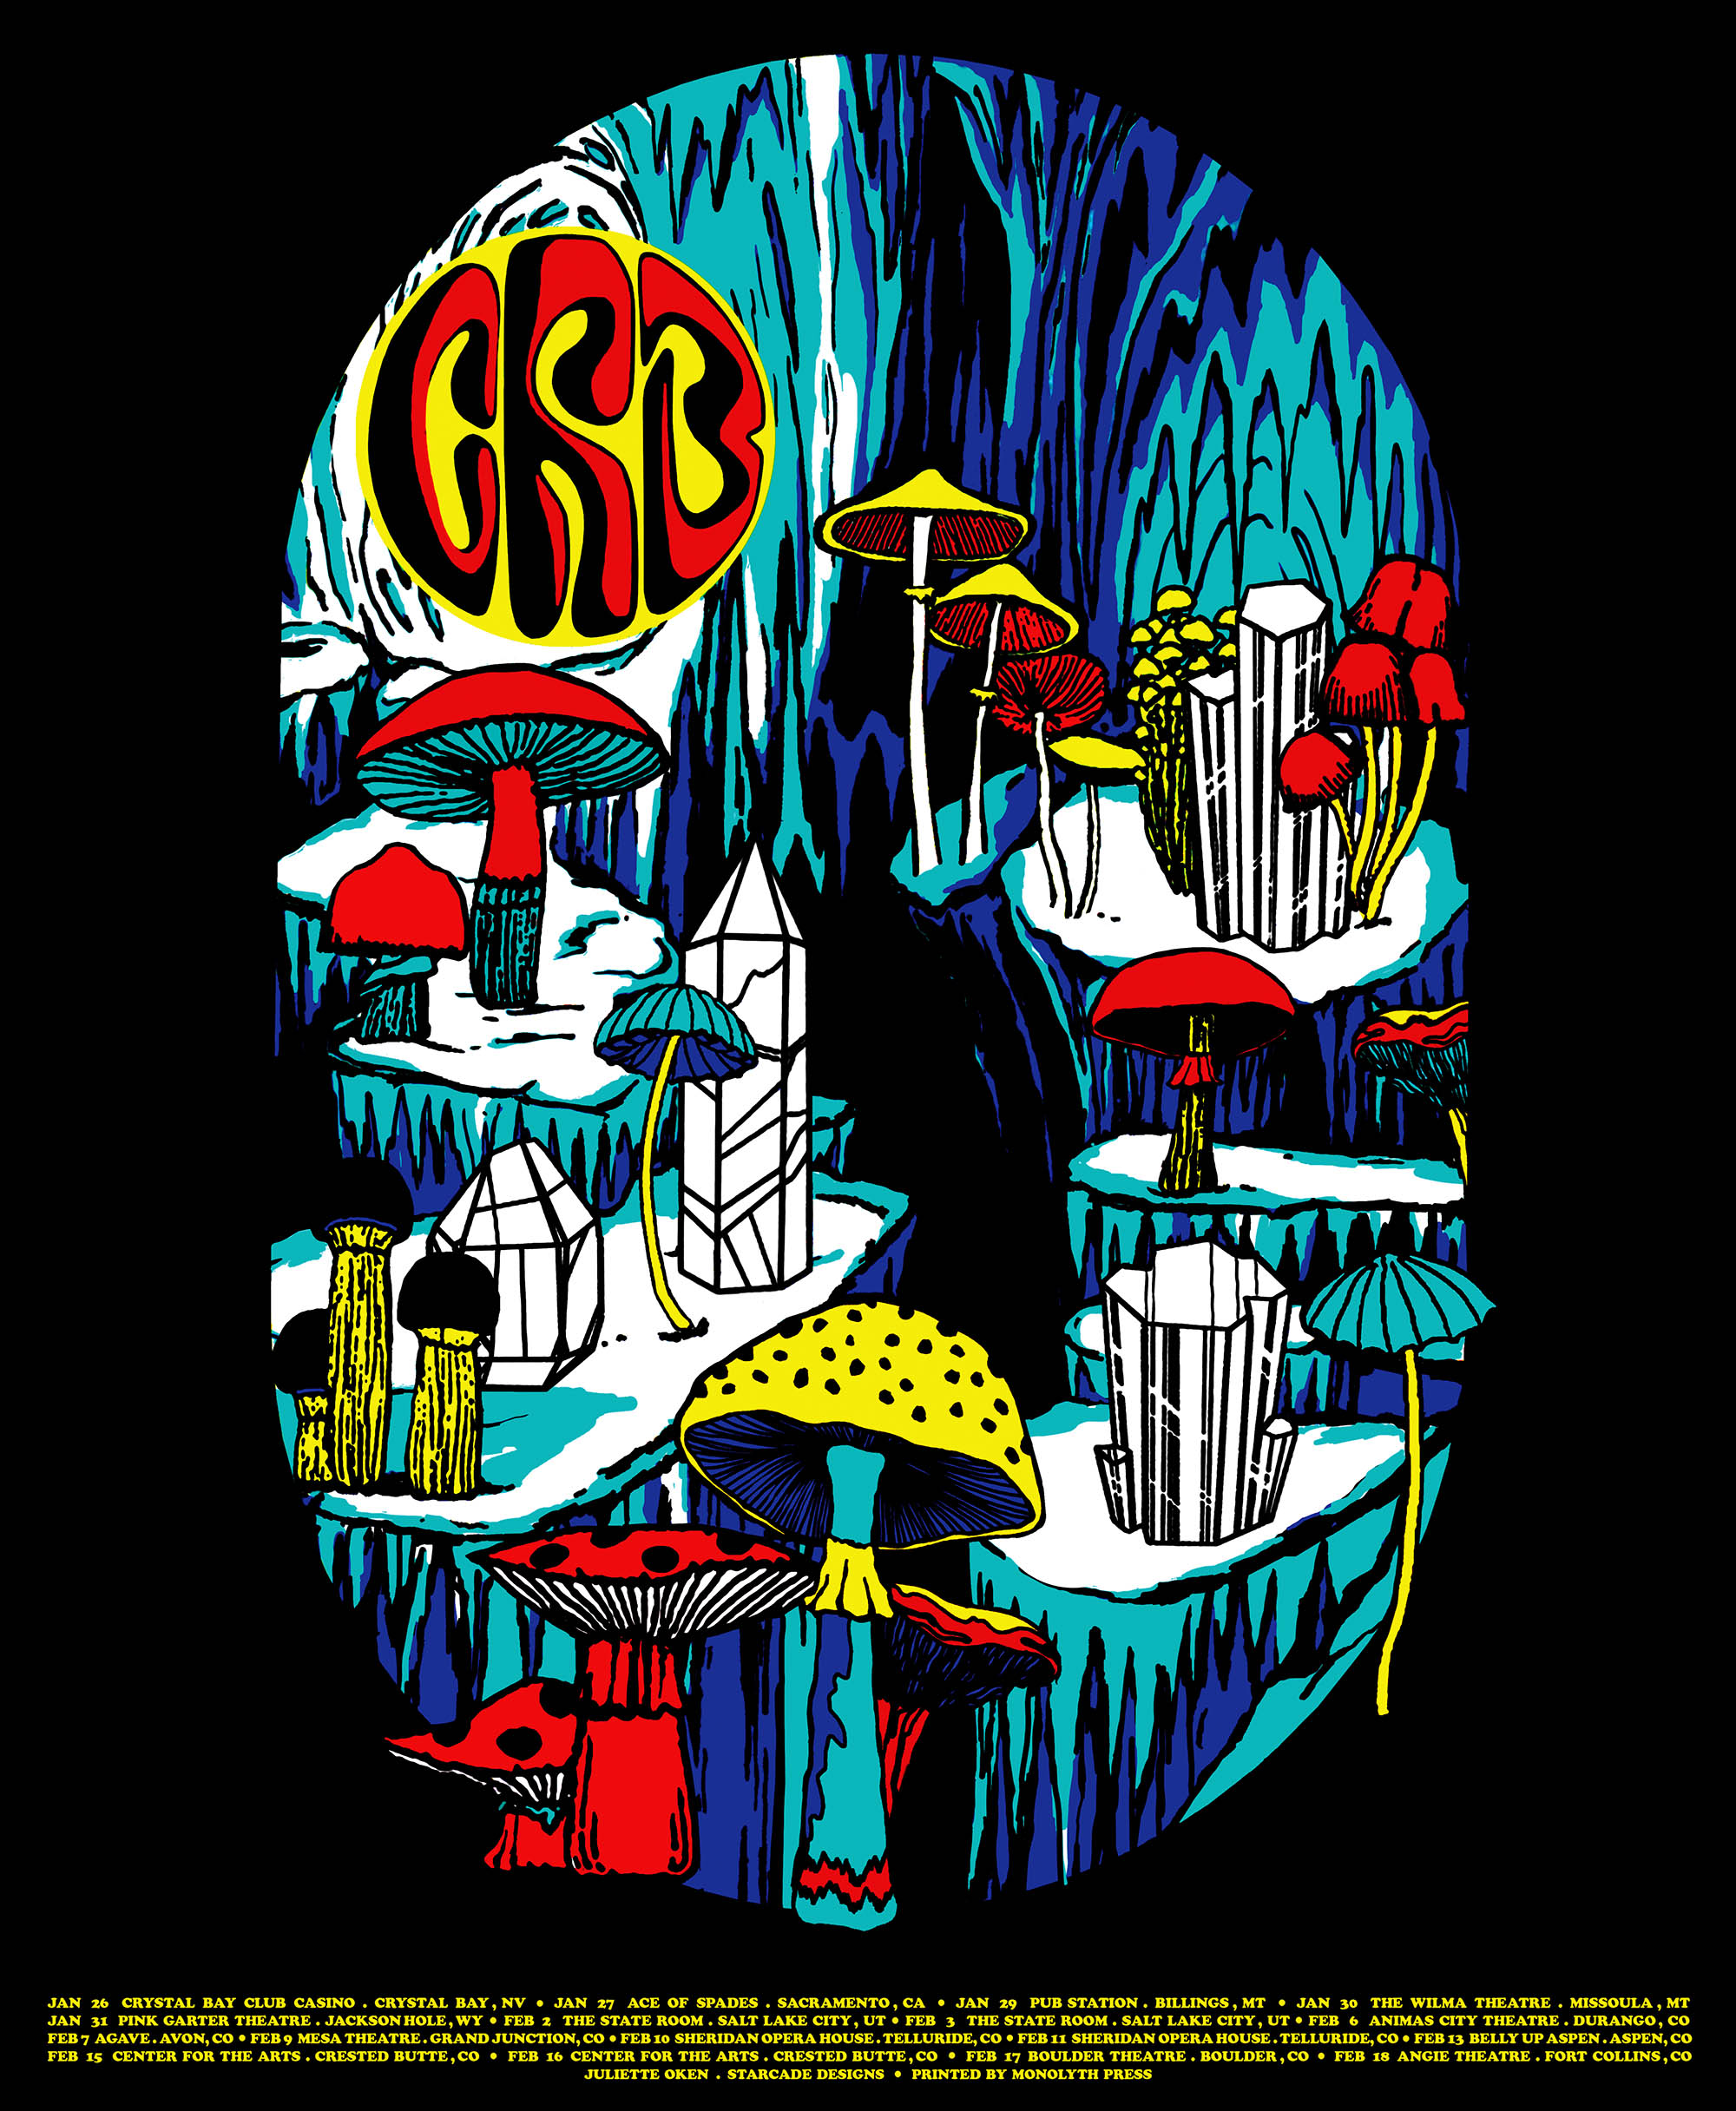 POSTER DESIGN FOR EDITION SCREEN PRINTED TOUR POSTER FOR CRB              .